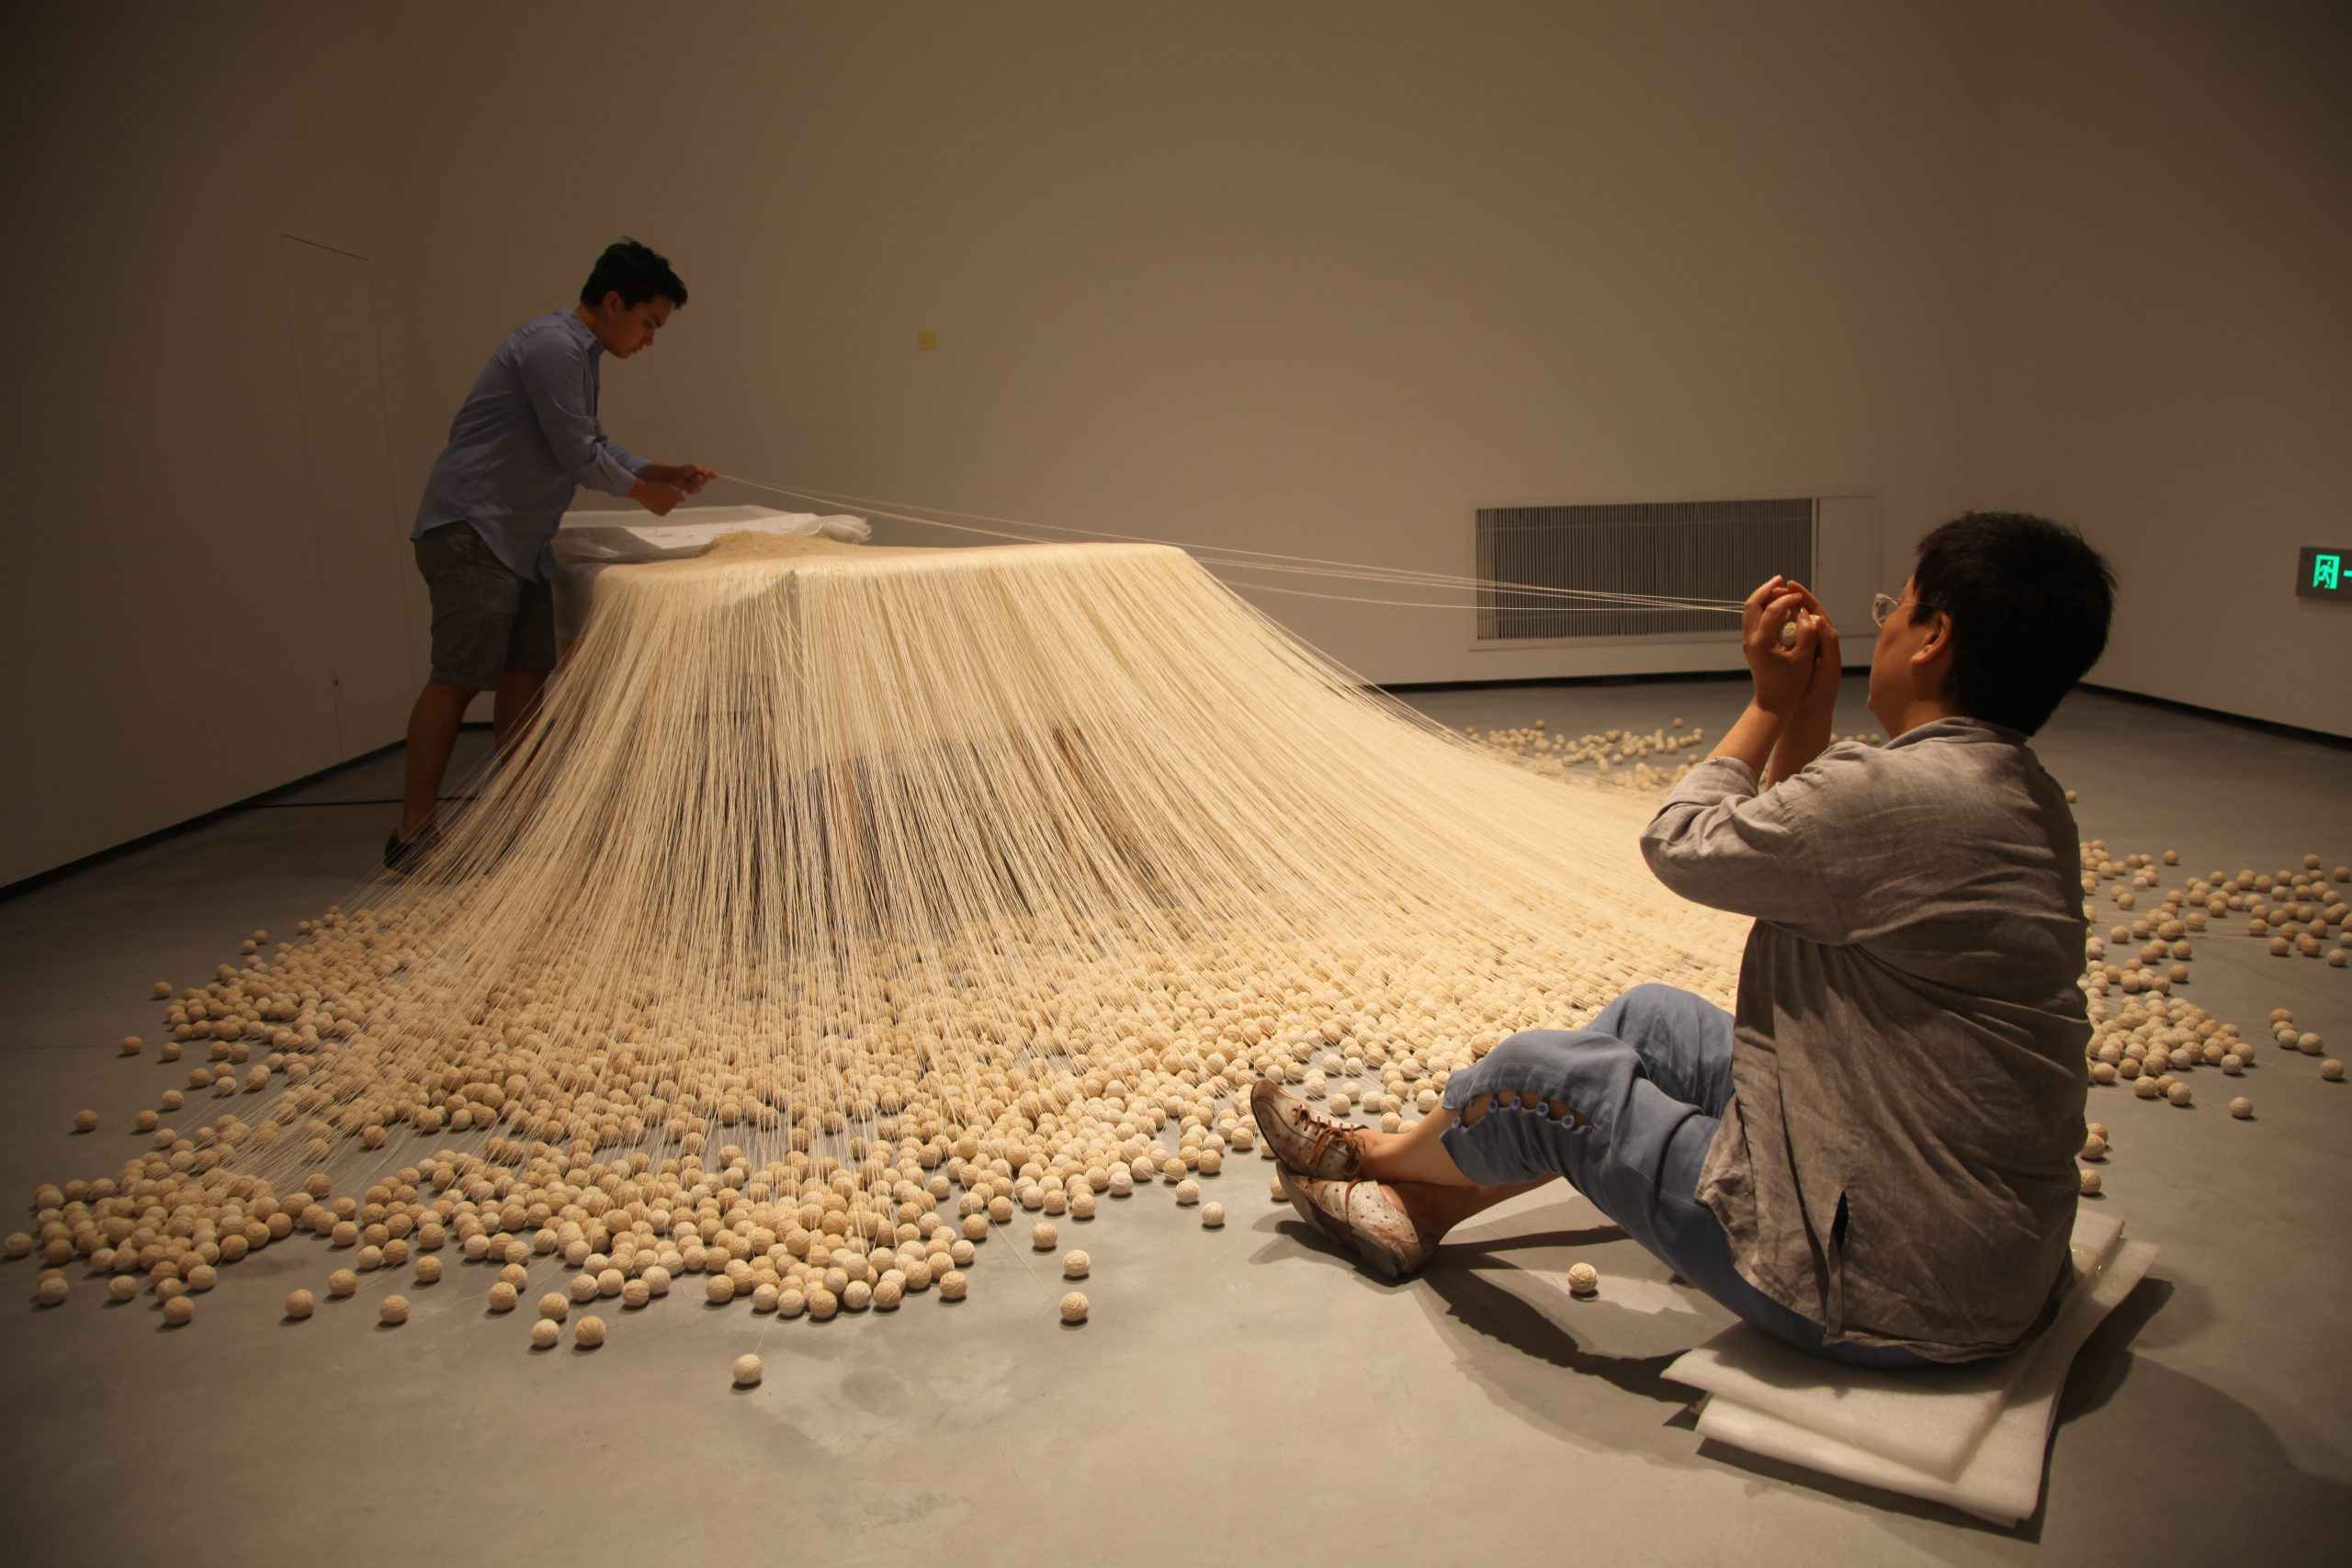 Lin Tianmiao and a studio assistant installing The Proliferation of Thread Winding (1995) for the exhibition The Civil Power, Minsheng Art Museum, 2015. Photo courtesy of the artist.